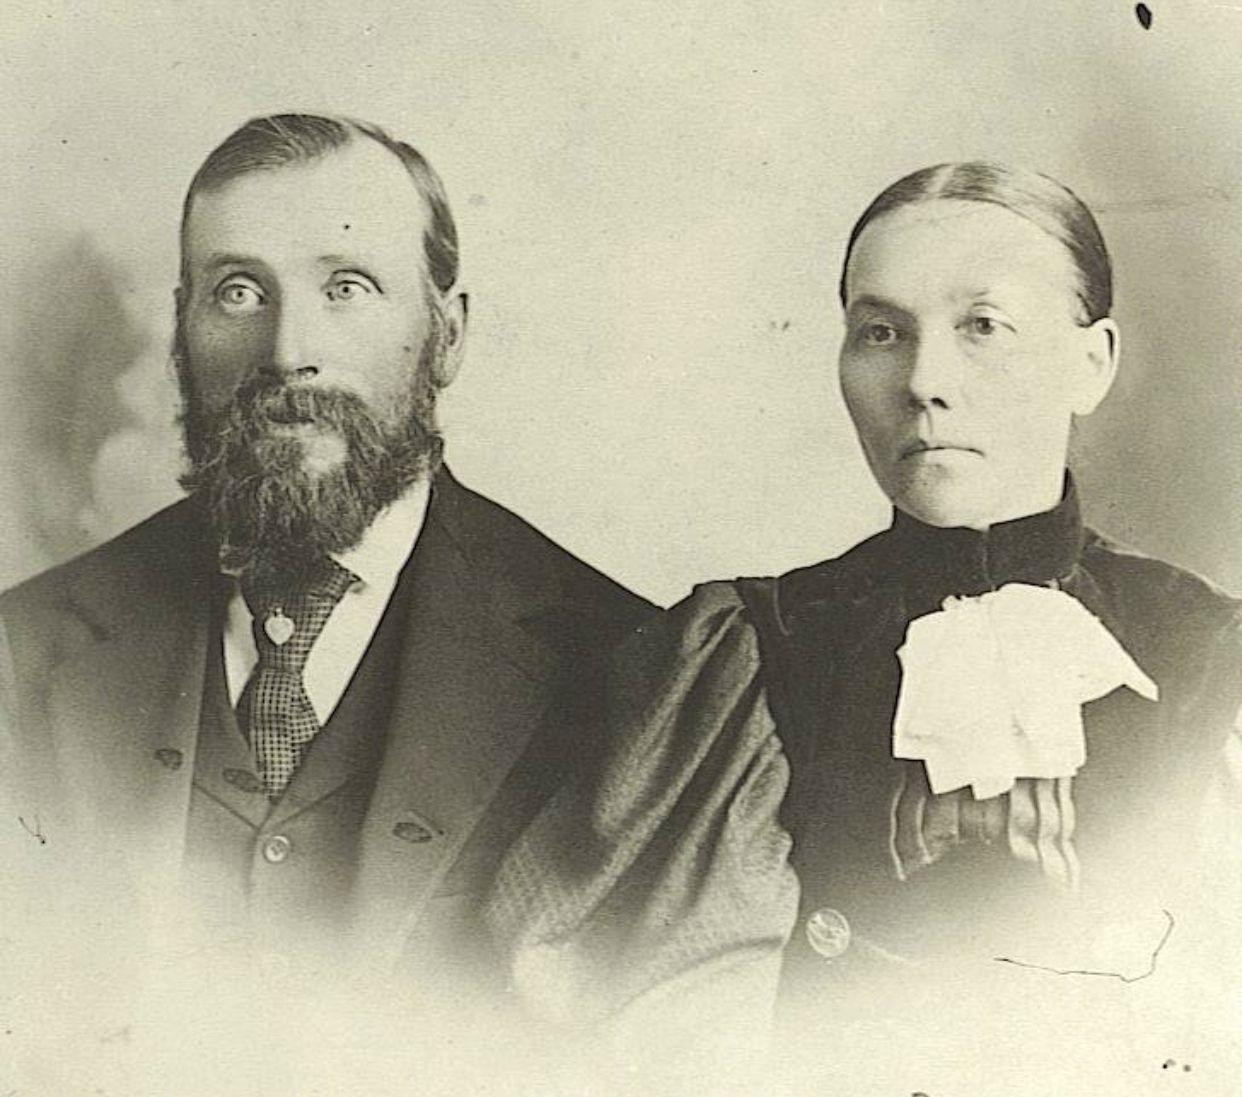 Hans Troftgruben And His Wife Kristina Sannerud From Nord Odal Norway In 2020 Vintage Photos Photo Historical Figures